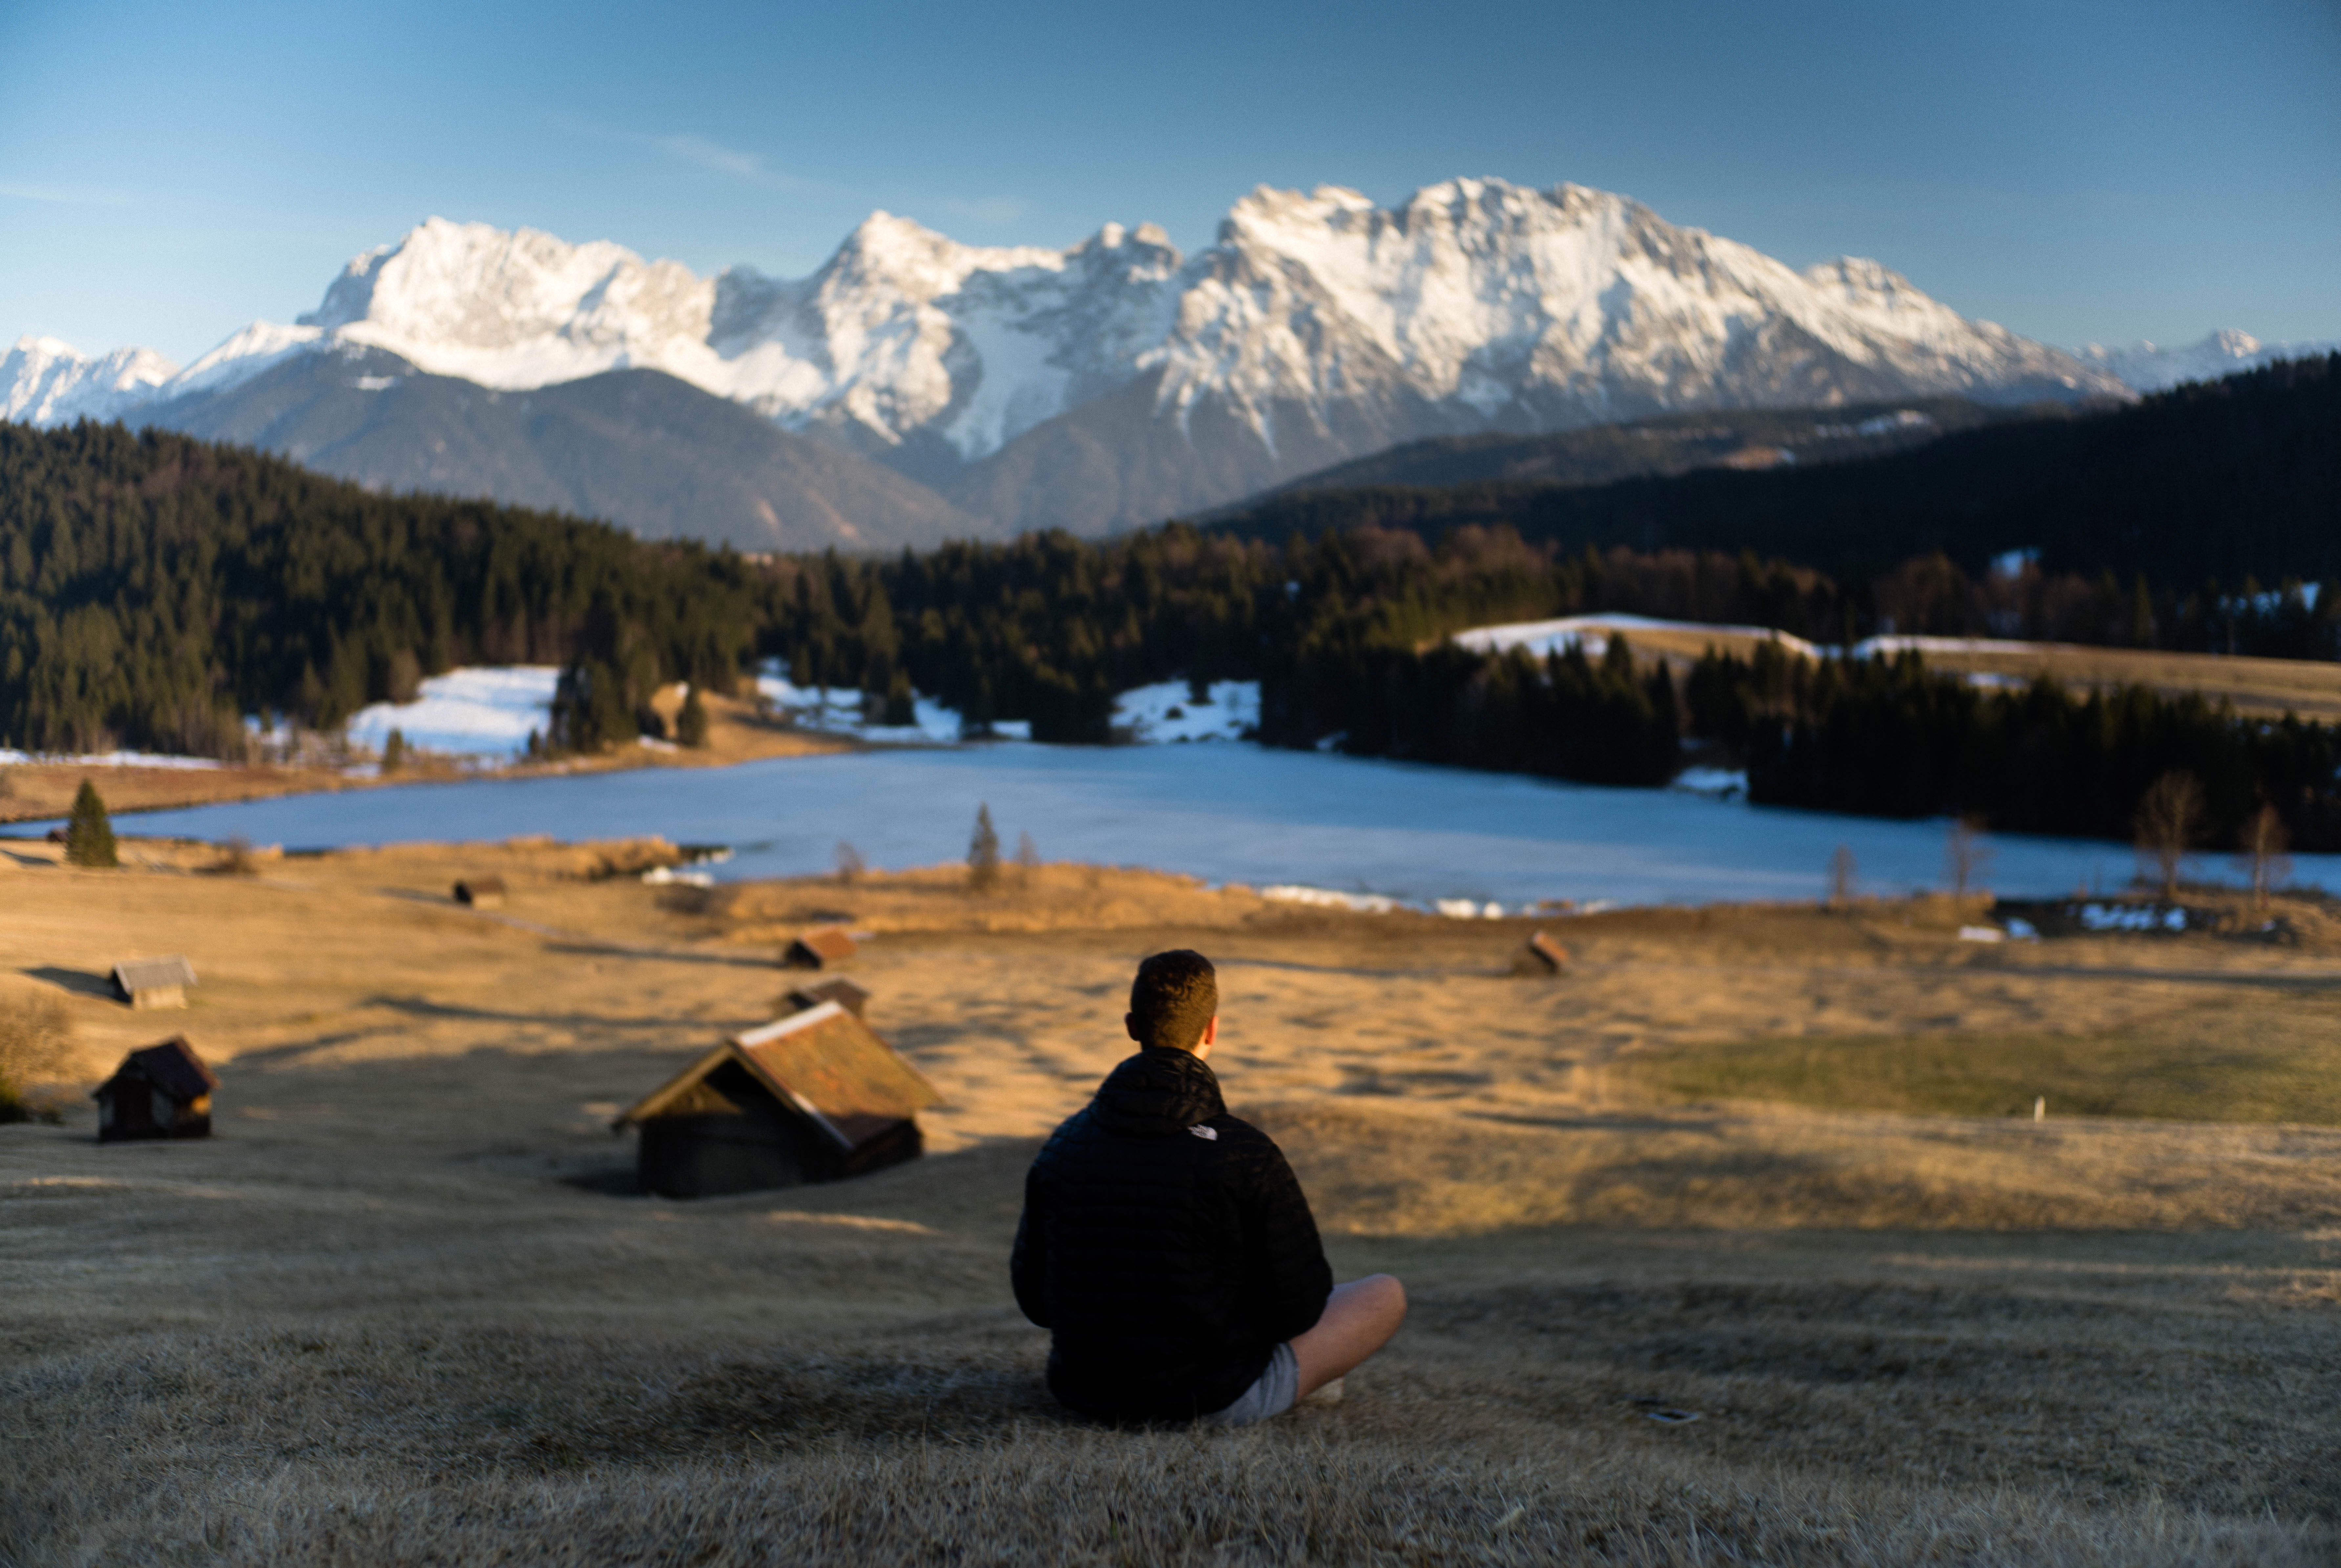 man looking at snow-capped mountains landscape in bavaria  germany image